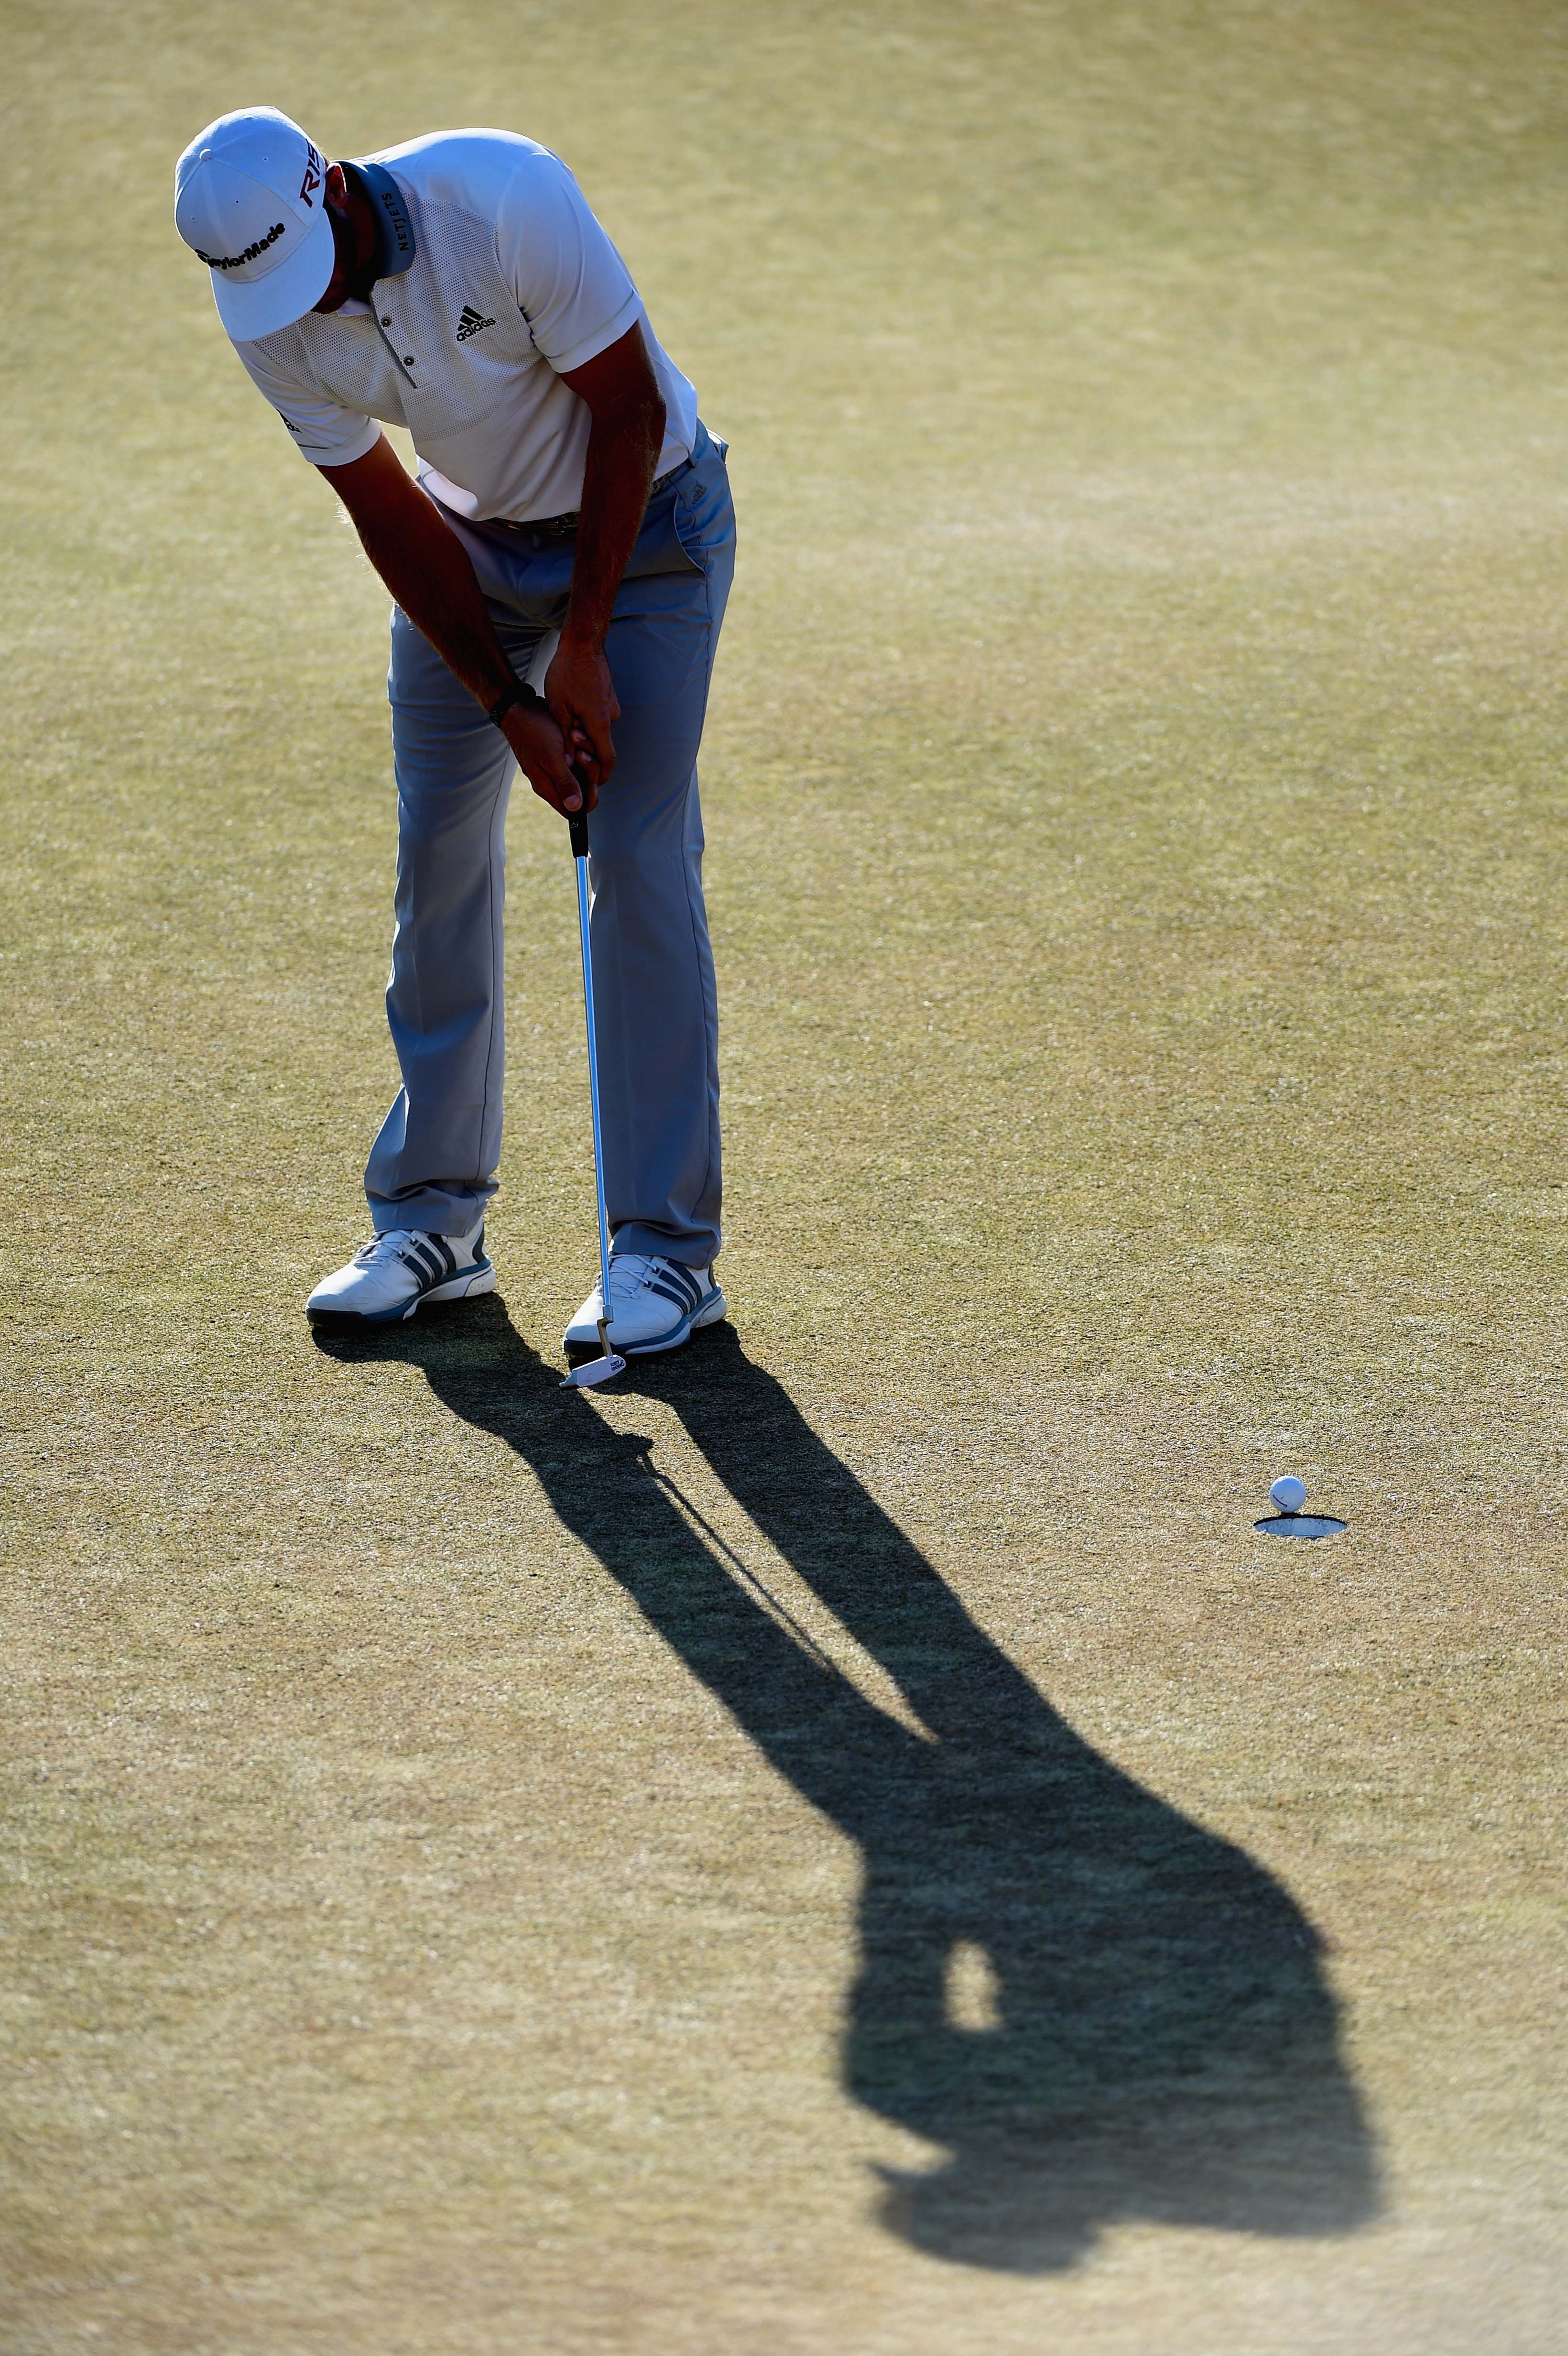 Dustin Johnson losing the U.S. Open on the 72nd hole ... or